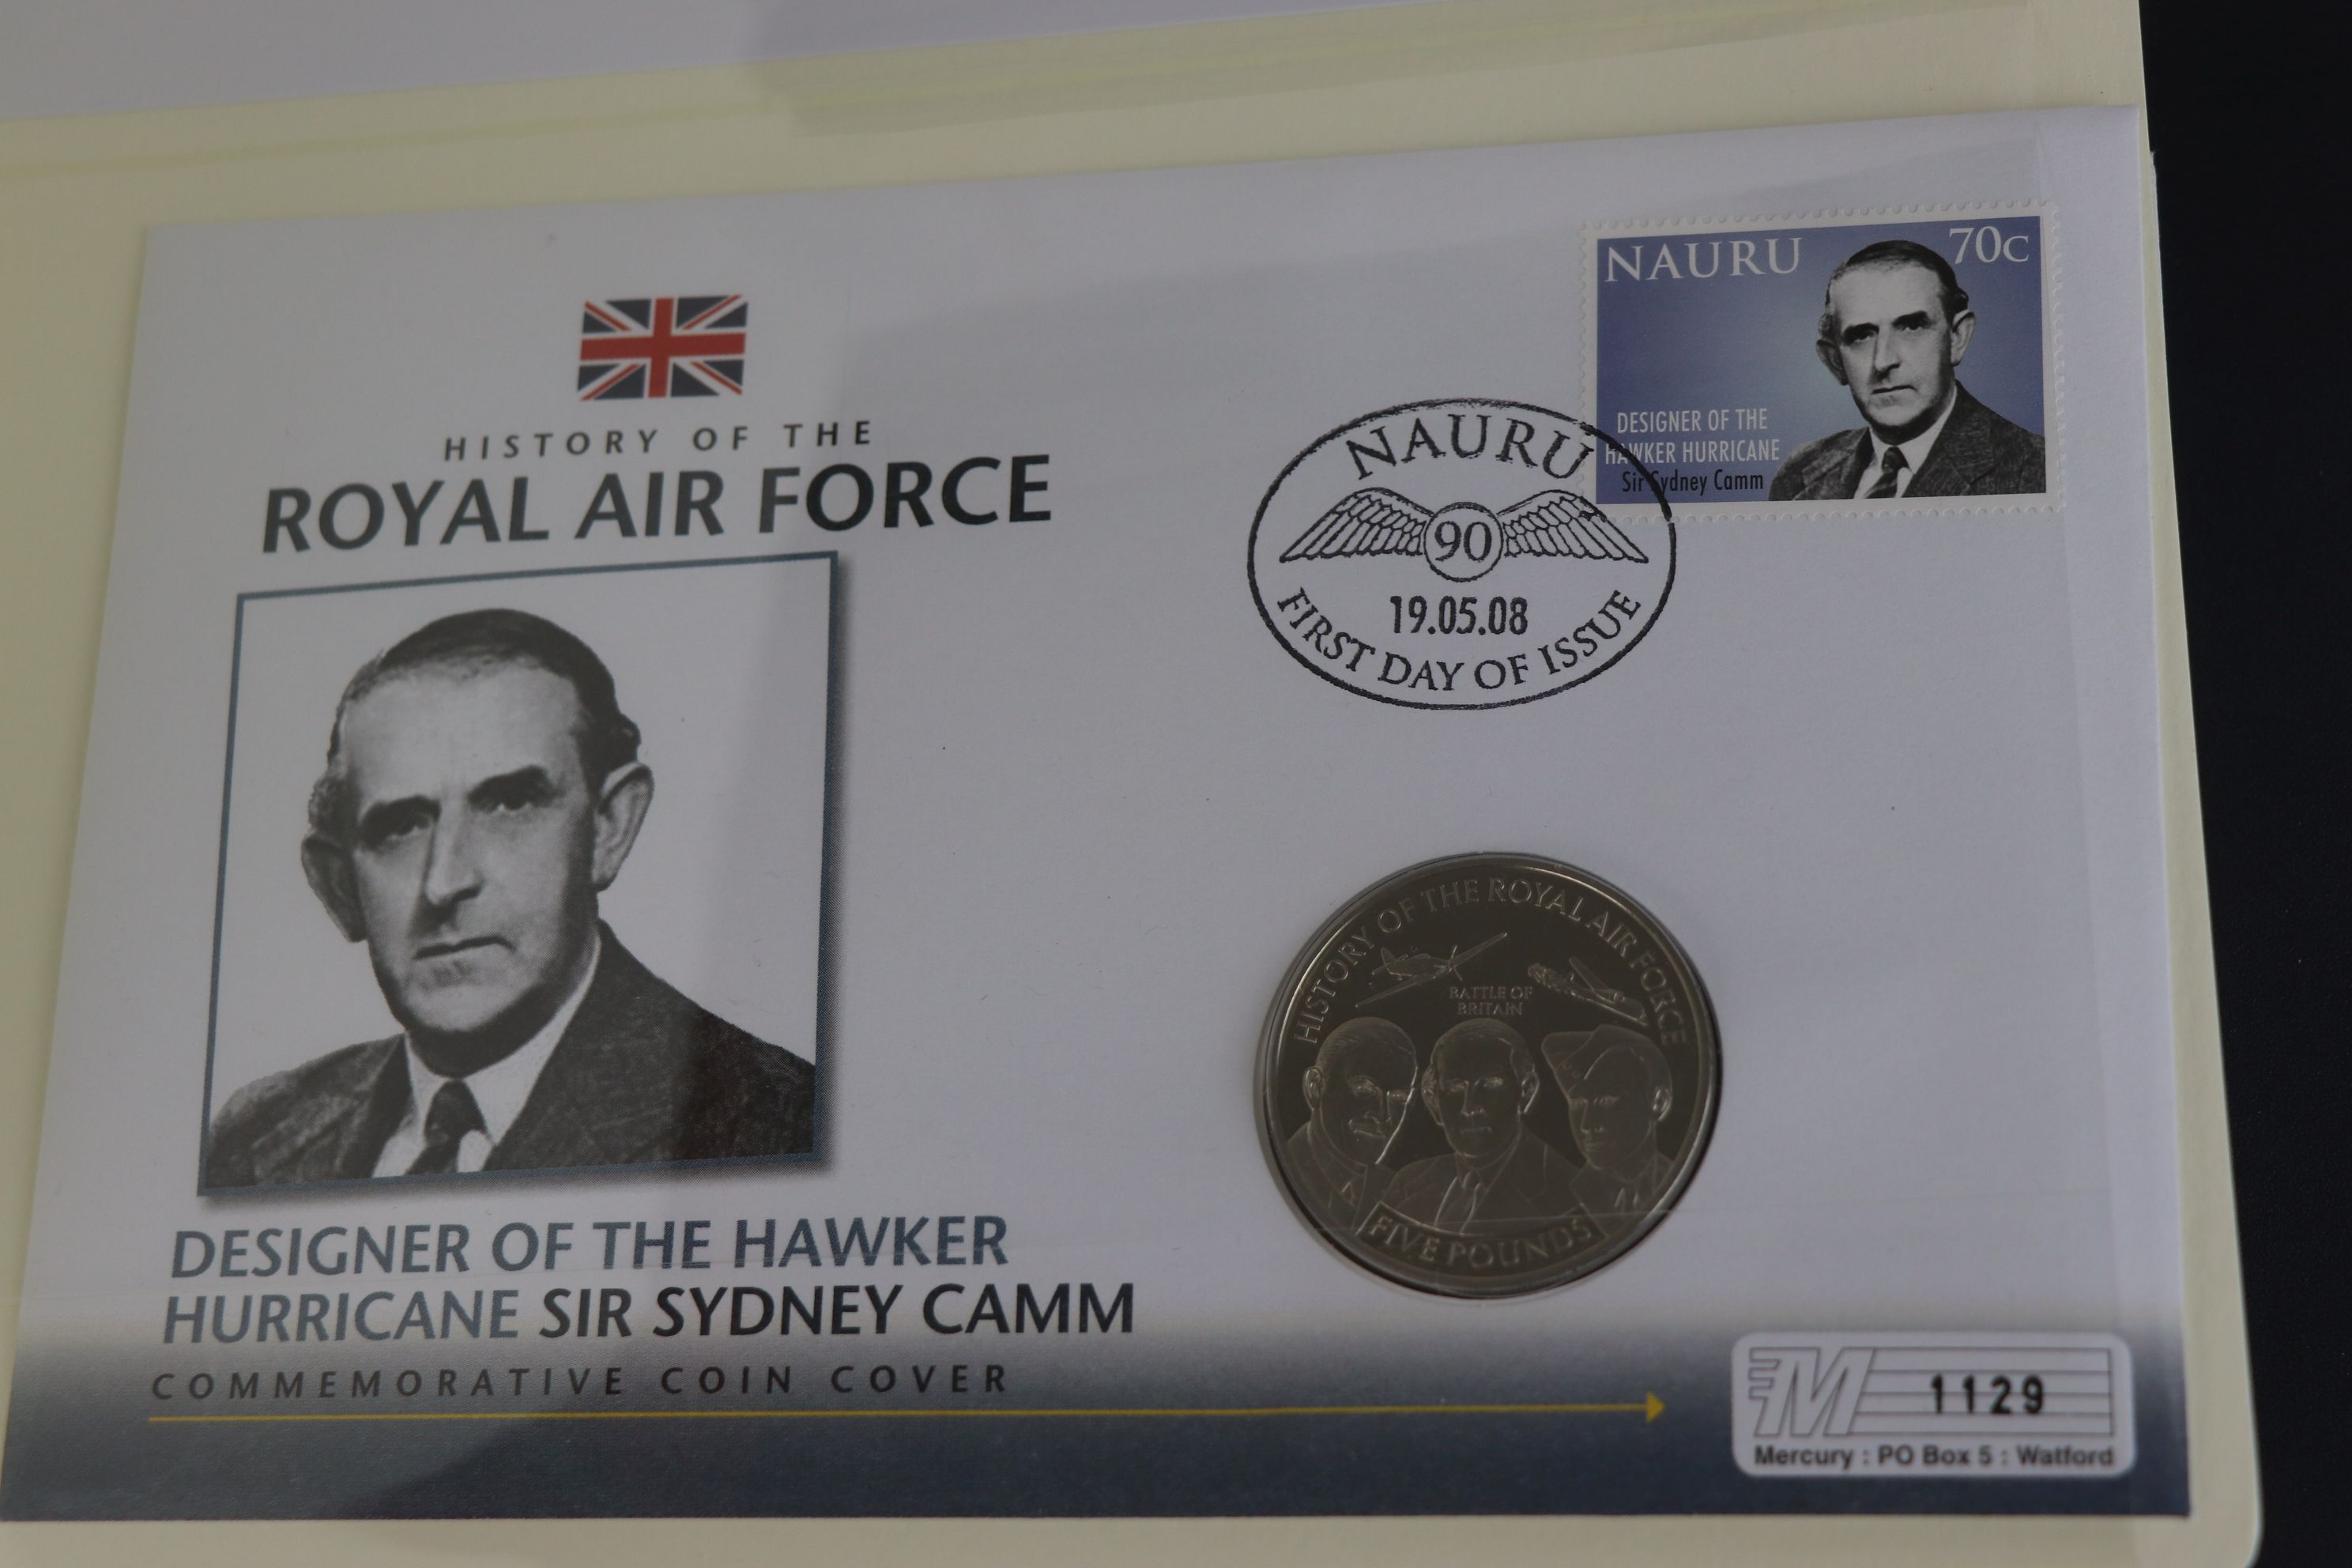 A limited edition Westminster Mint History of the Royal Air Force coin and stamp cover collection to - Image 15 of 16